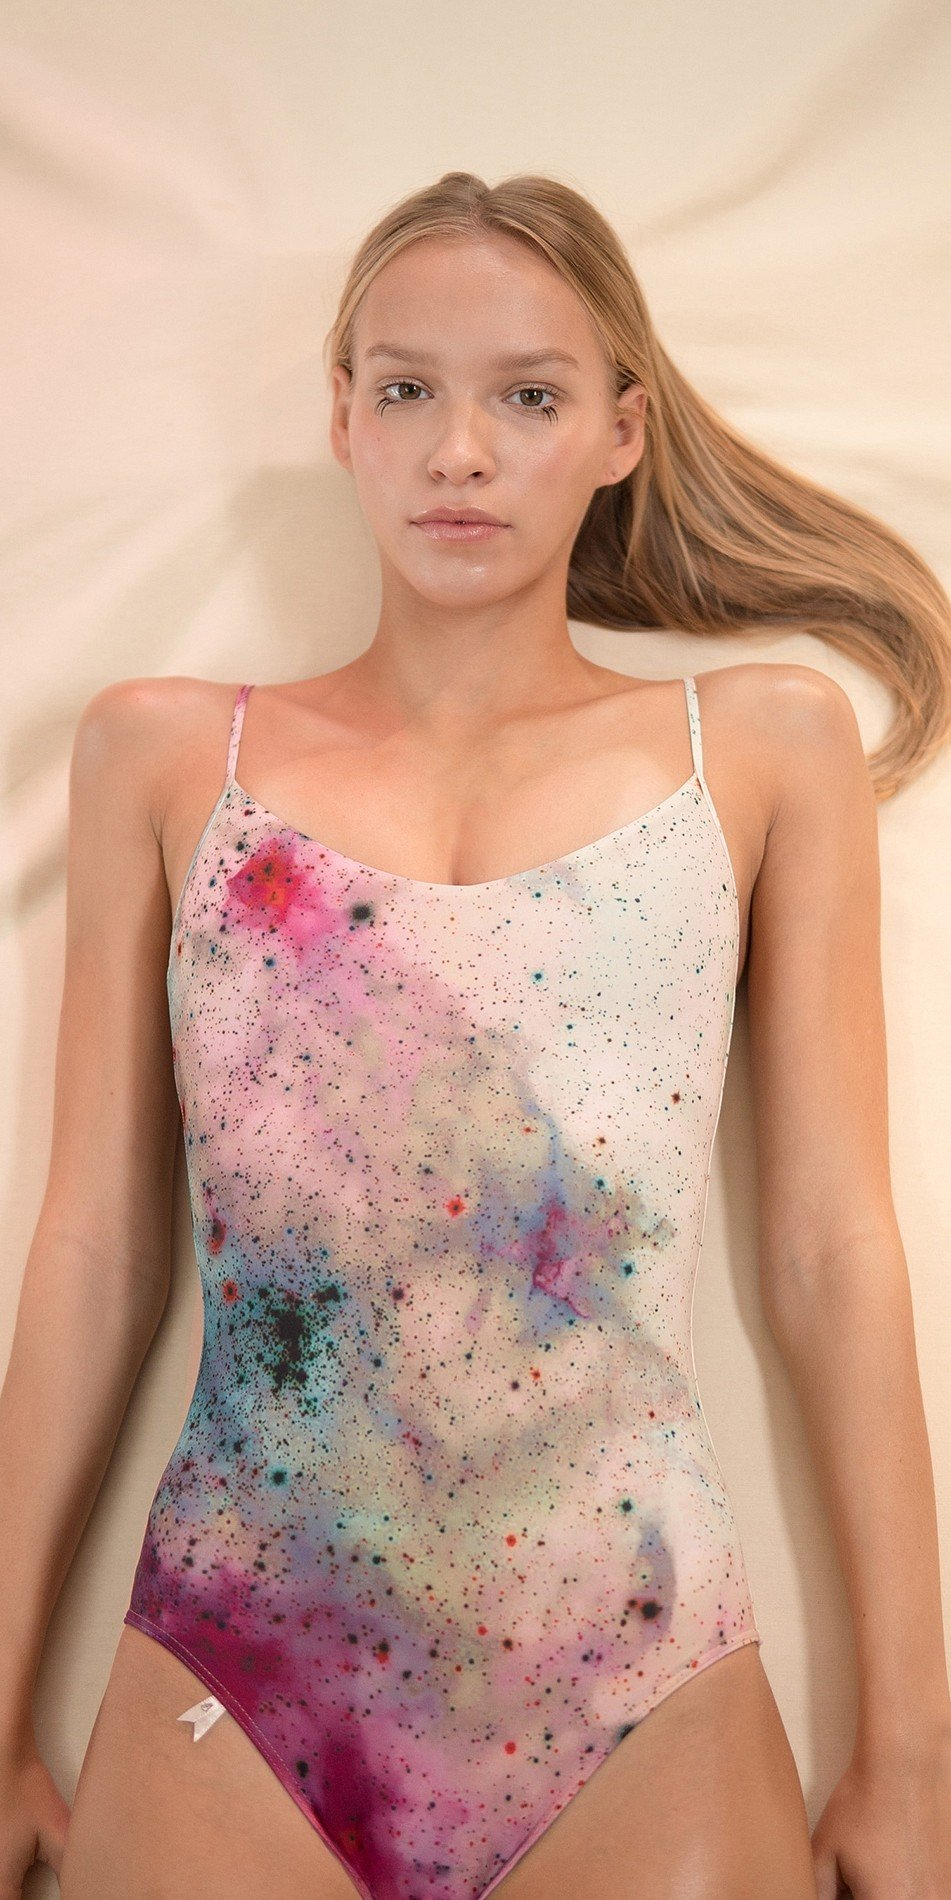 GALAXY aquarelle classic leotard 1 r